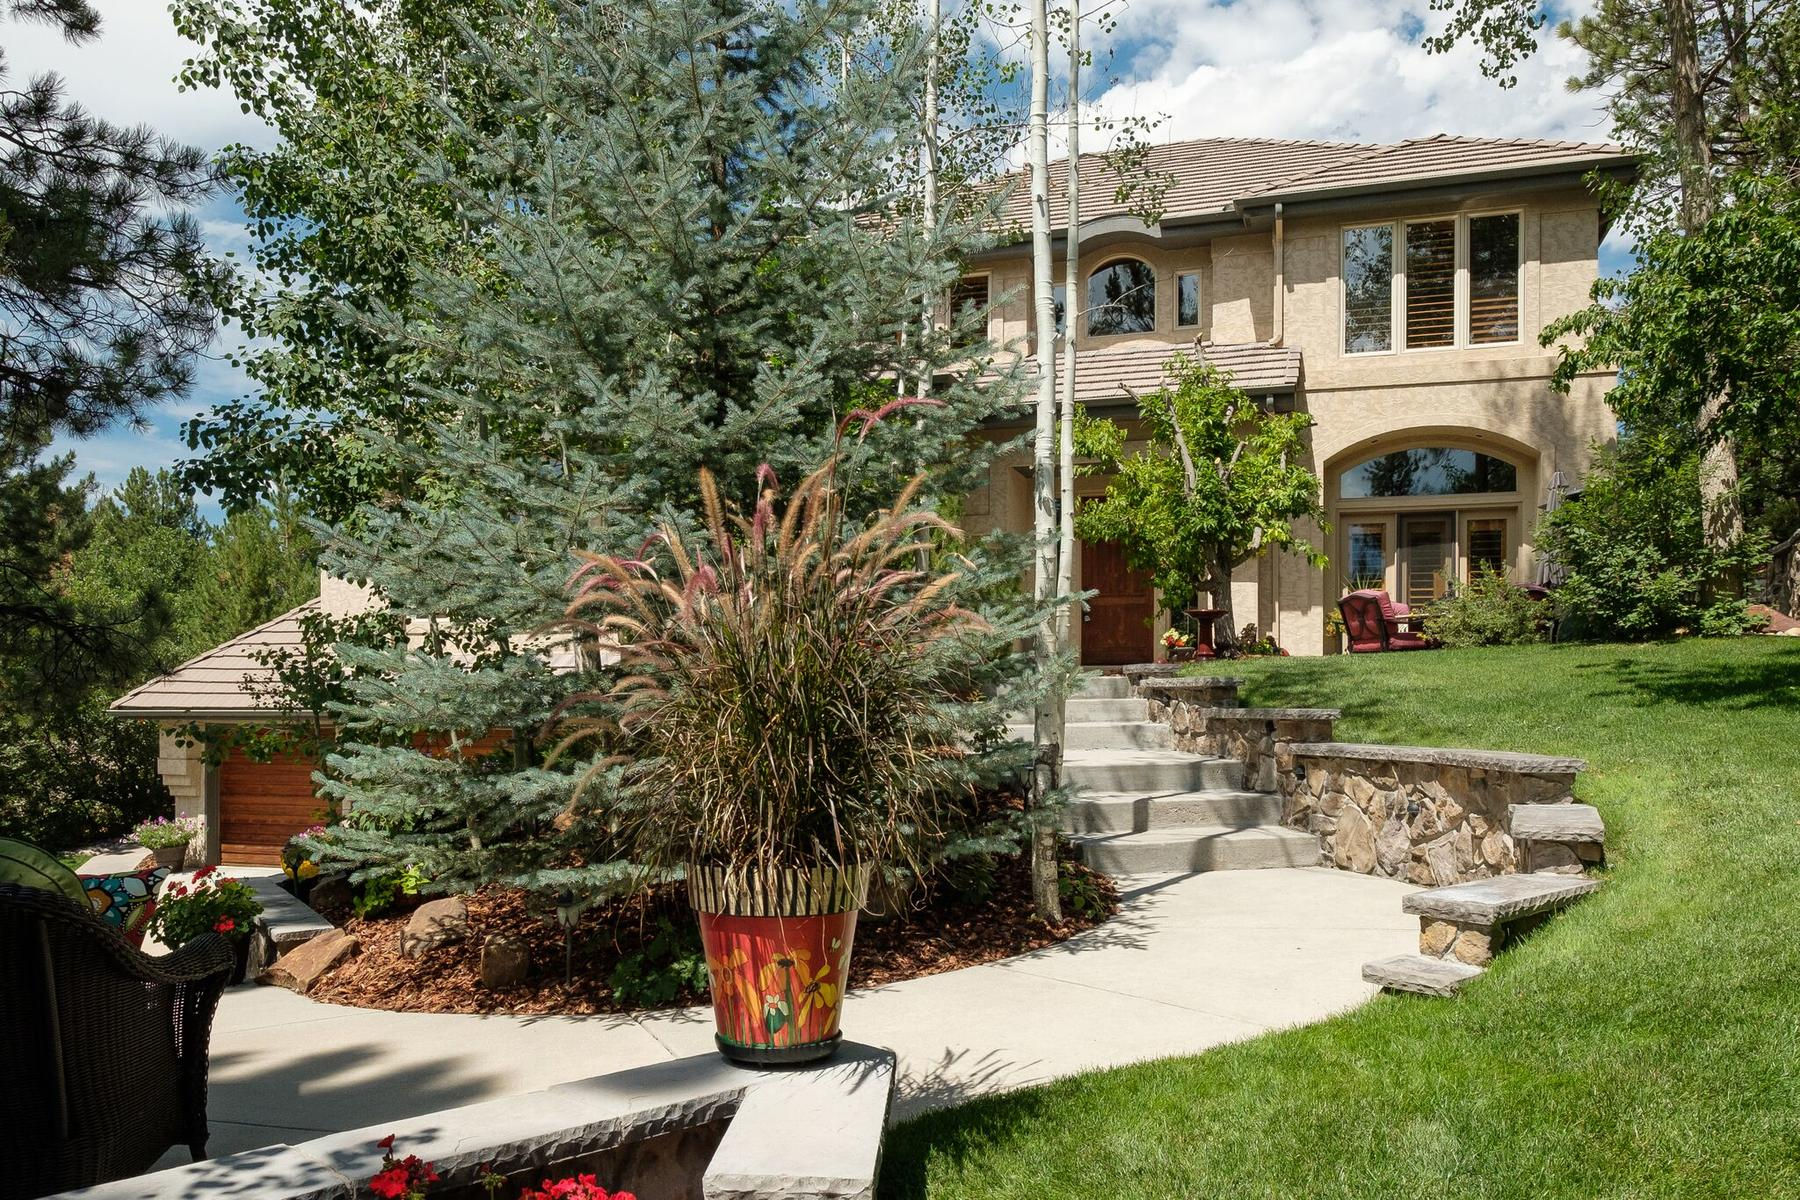 Single Family Home for Active at Colorado living at its finest at this impressive home. 245 Country Club Pkwy Castle Rock, Colorado 80108 United States